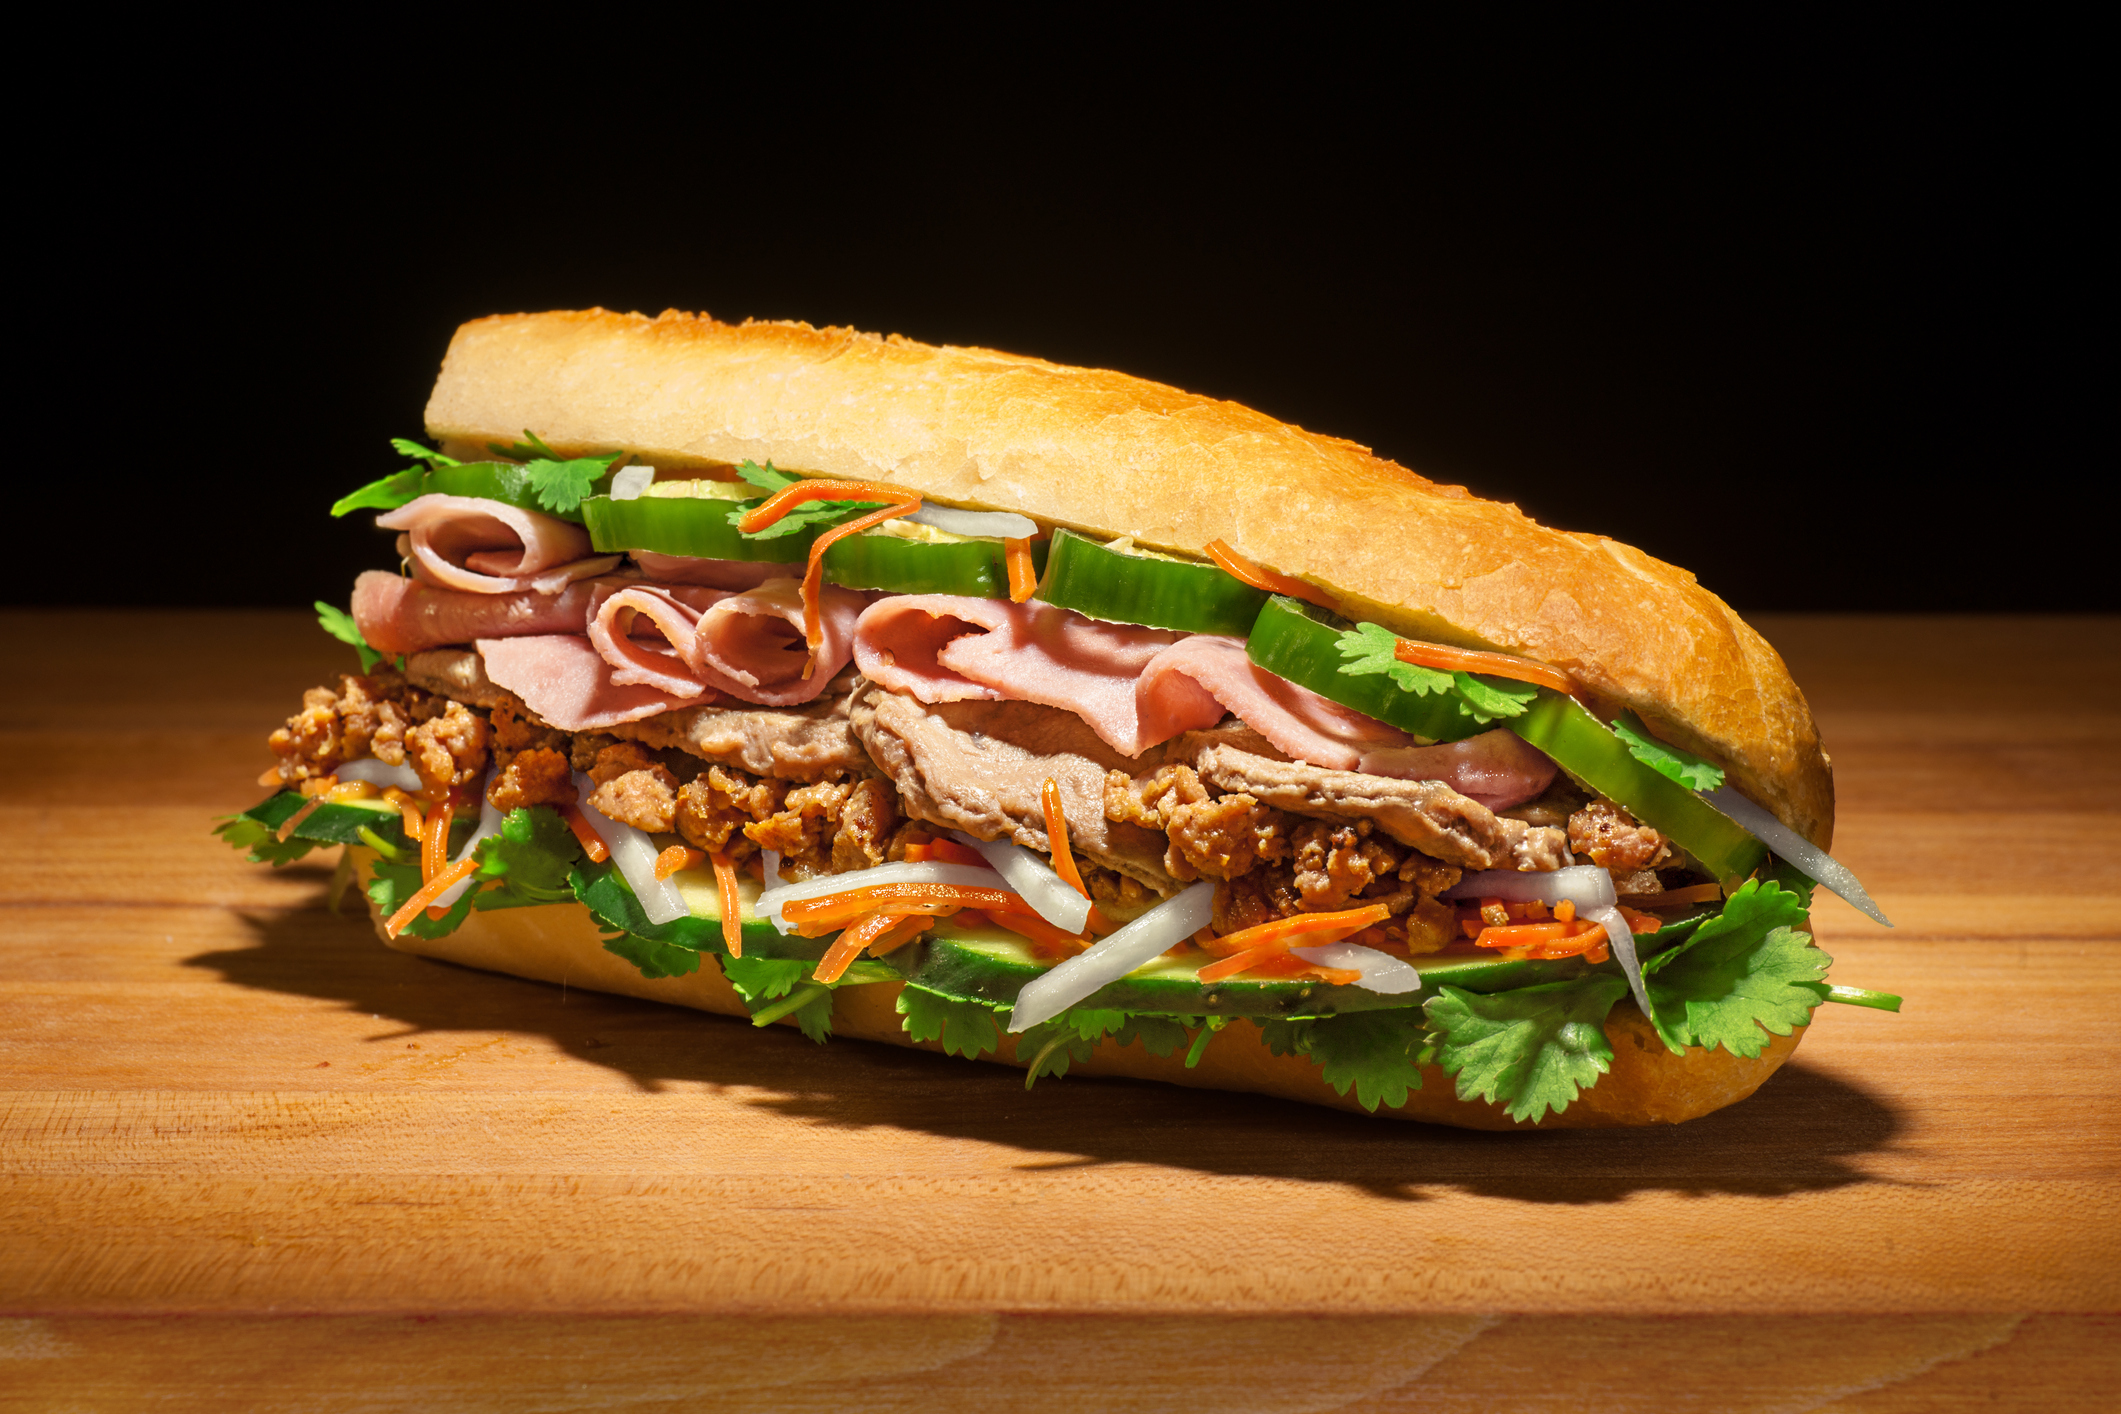 Aspirational style shot of a huge Bánh mì sandwich with cilantro, jalepenos, pickled carrots and daikon, Vietnamese ham, chopped pork and pork steak, and cucumbers, on fresh baguette.